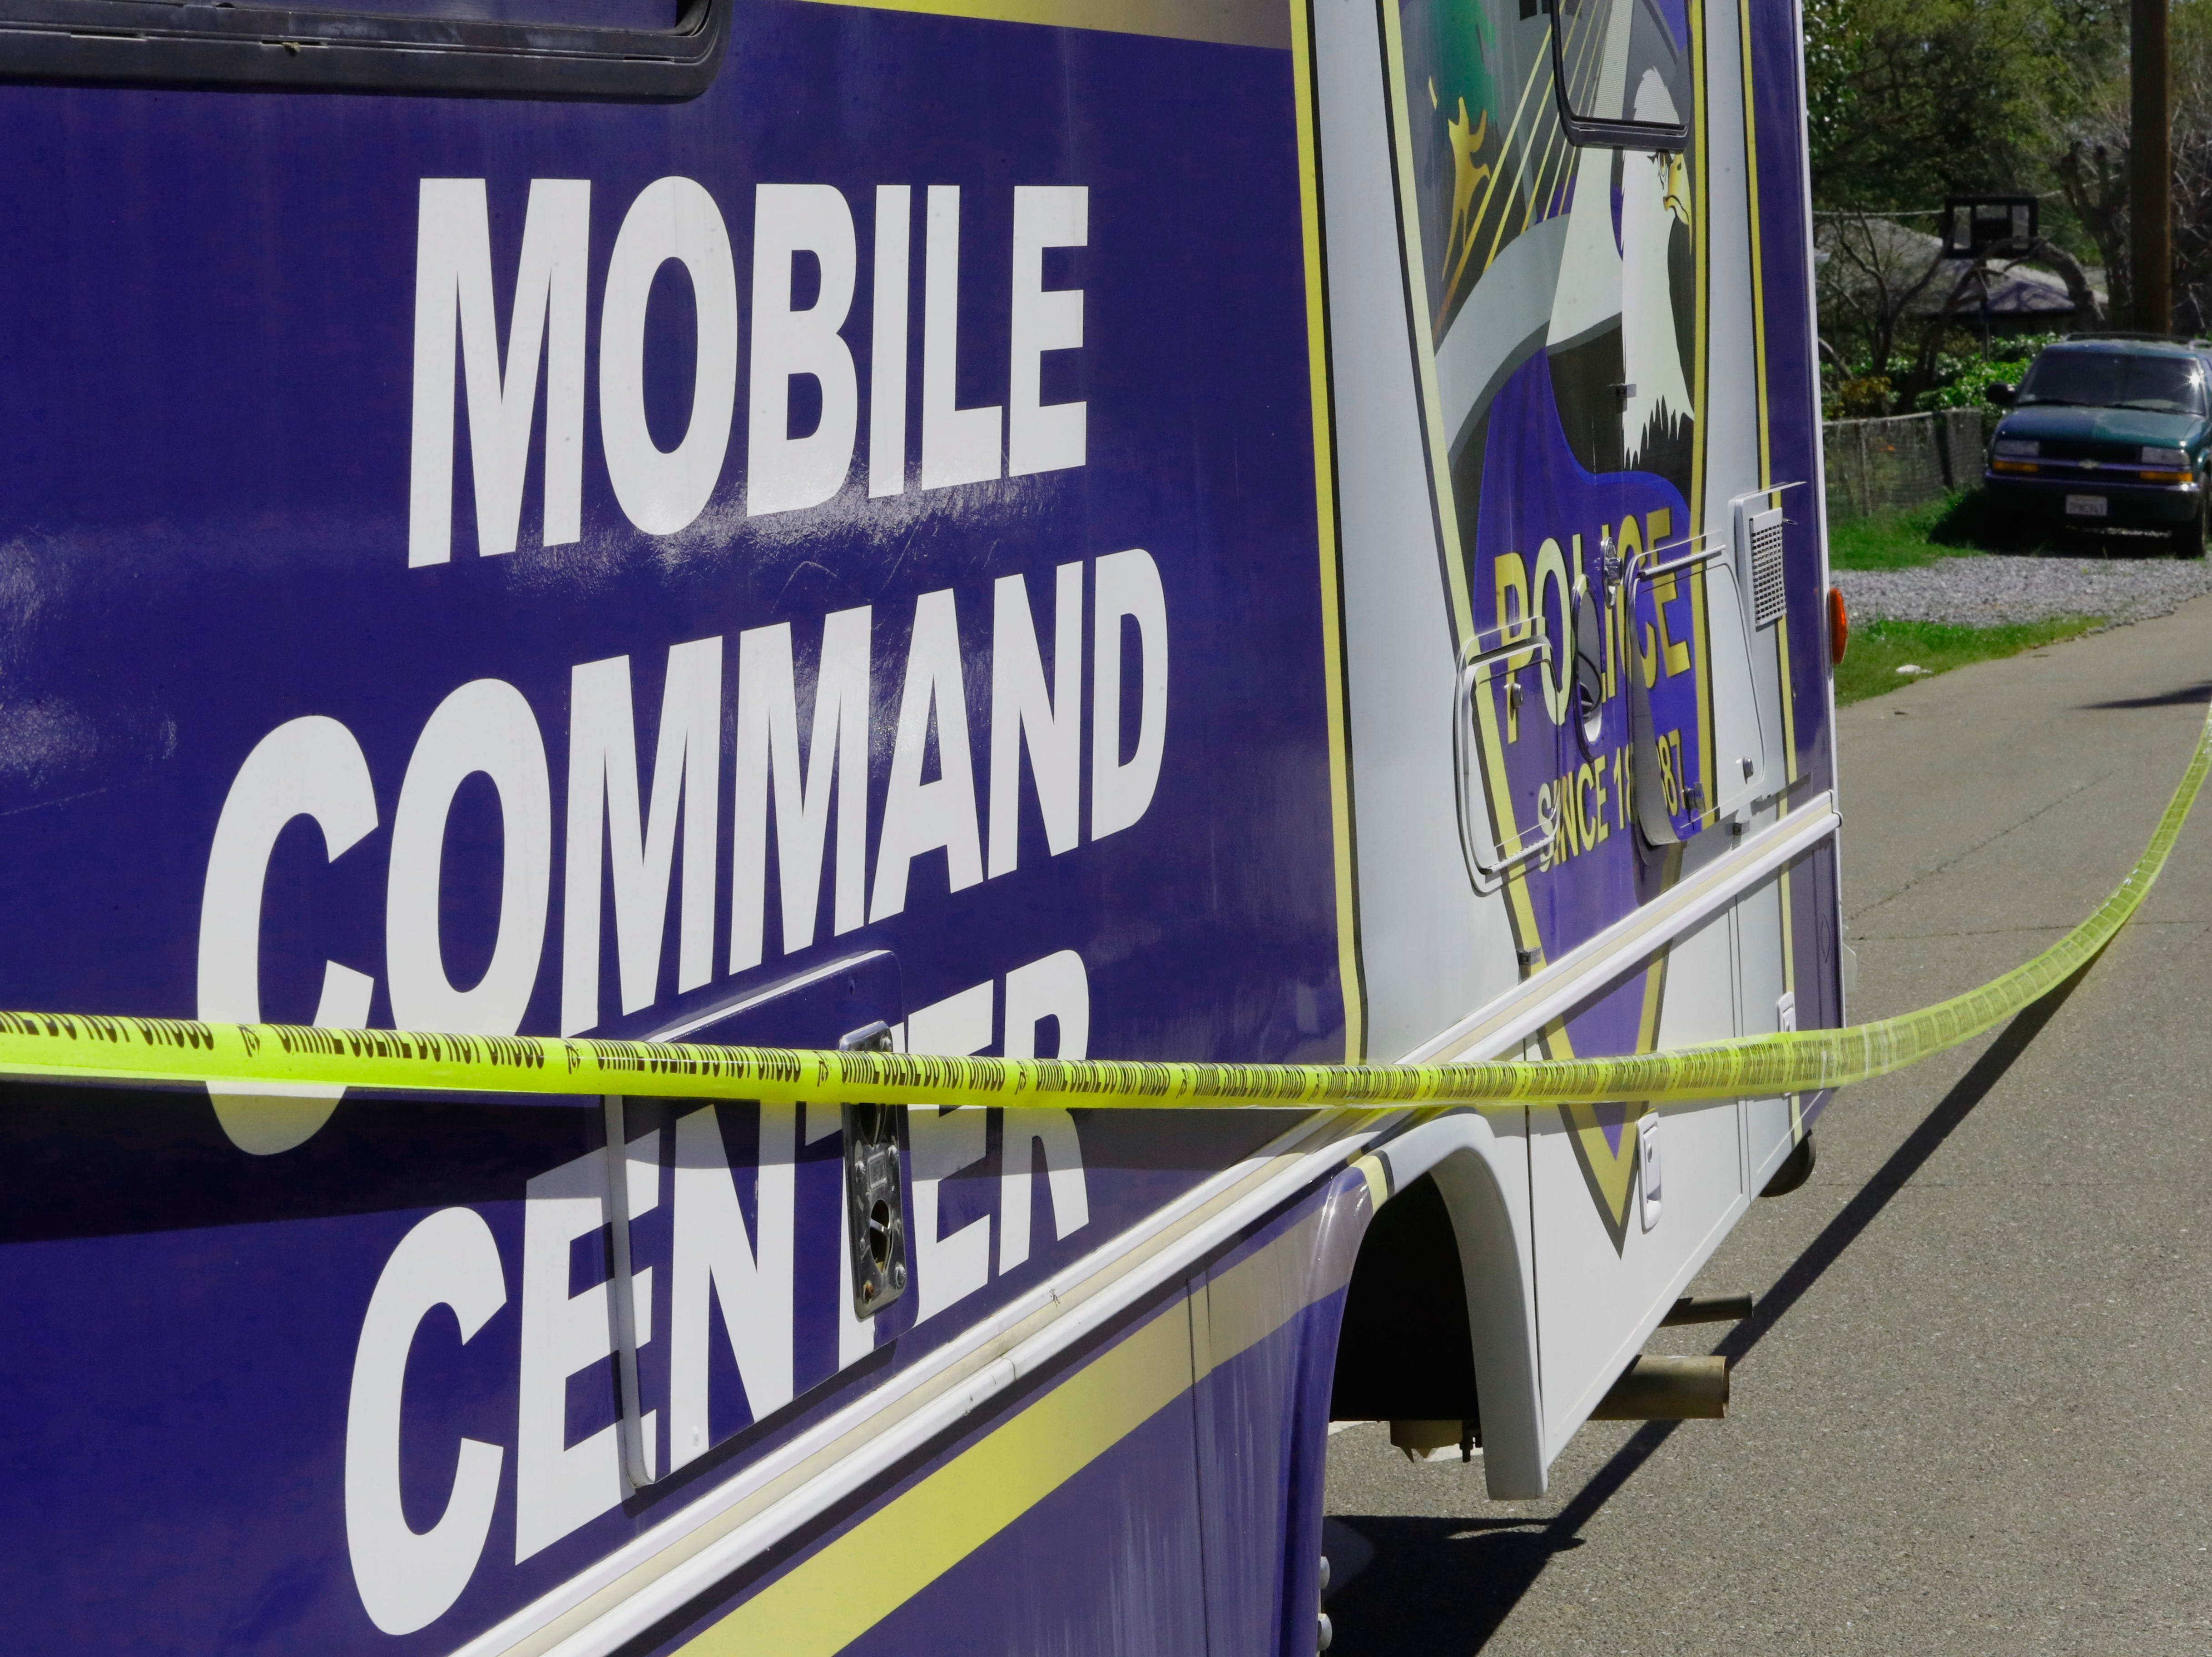 Redding police set up a mobile command center at Oxford Road and Derby Lane after a man fired a gun inside a house Friday.